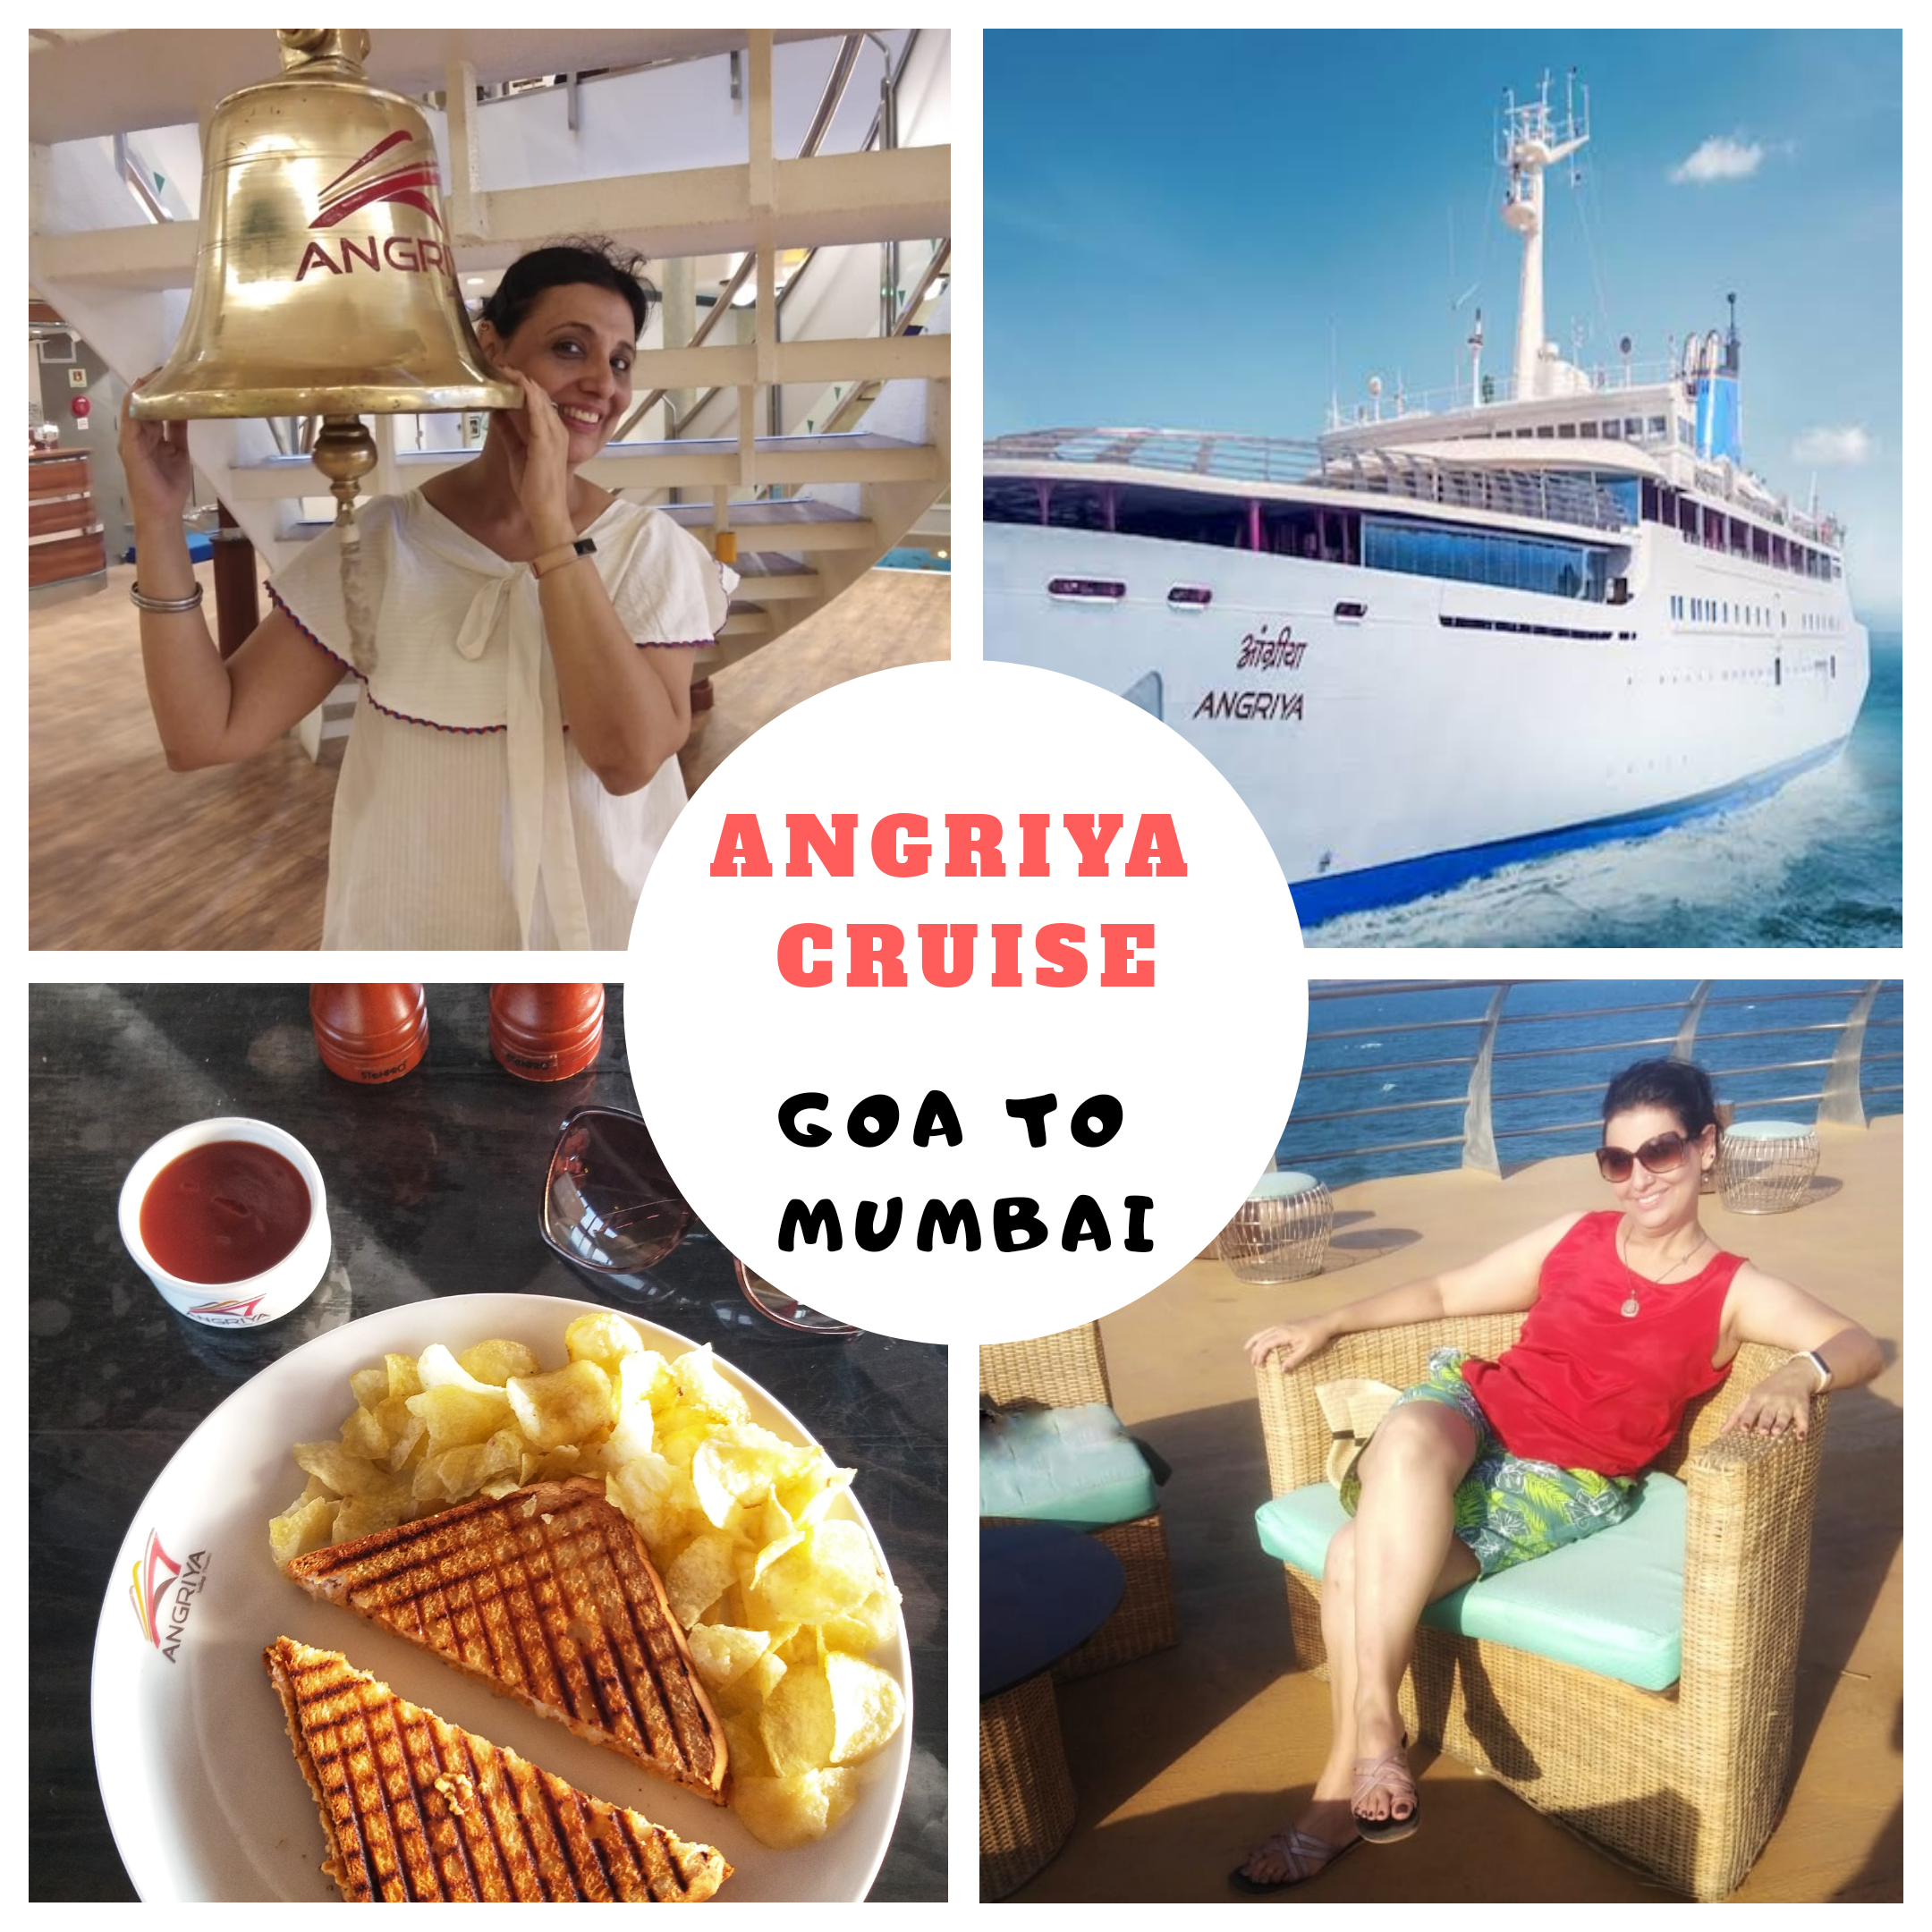 Goa to Mumbai Cruise